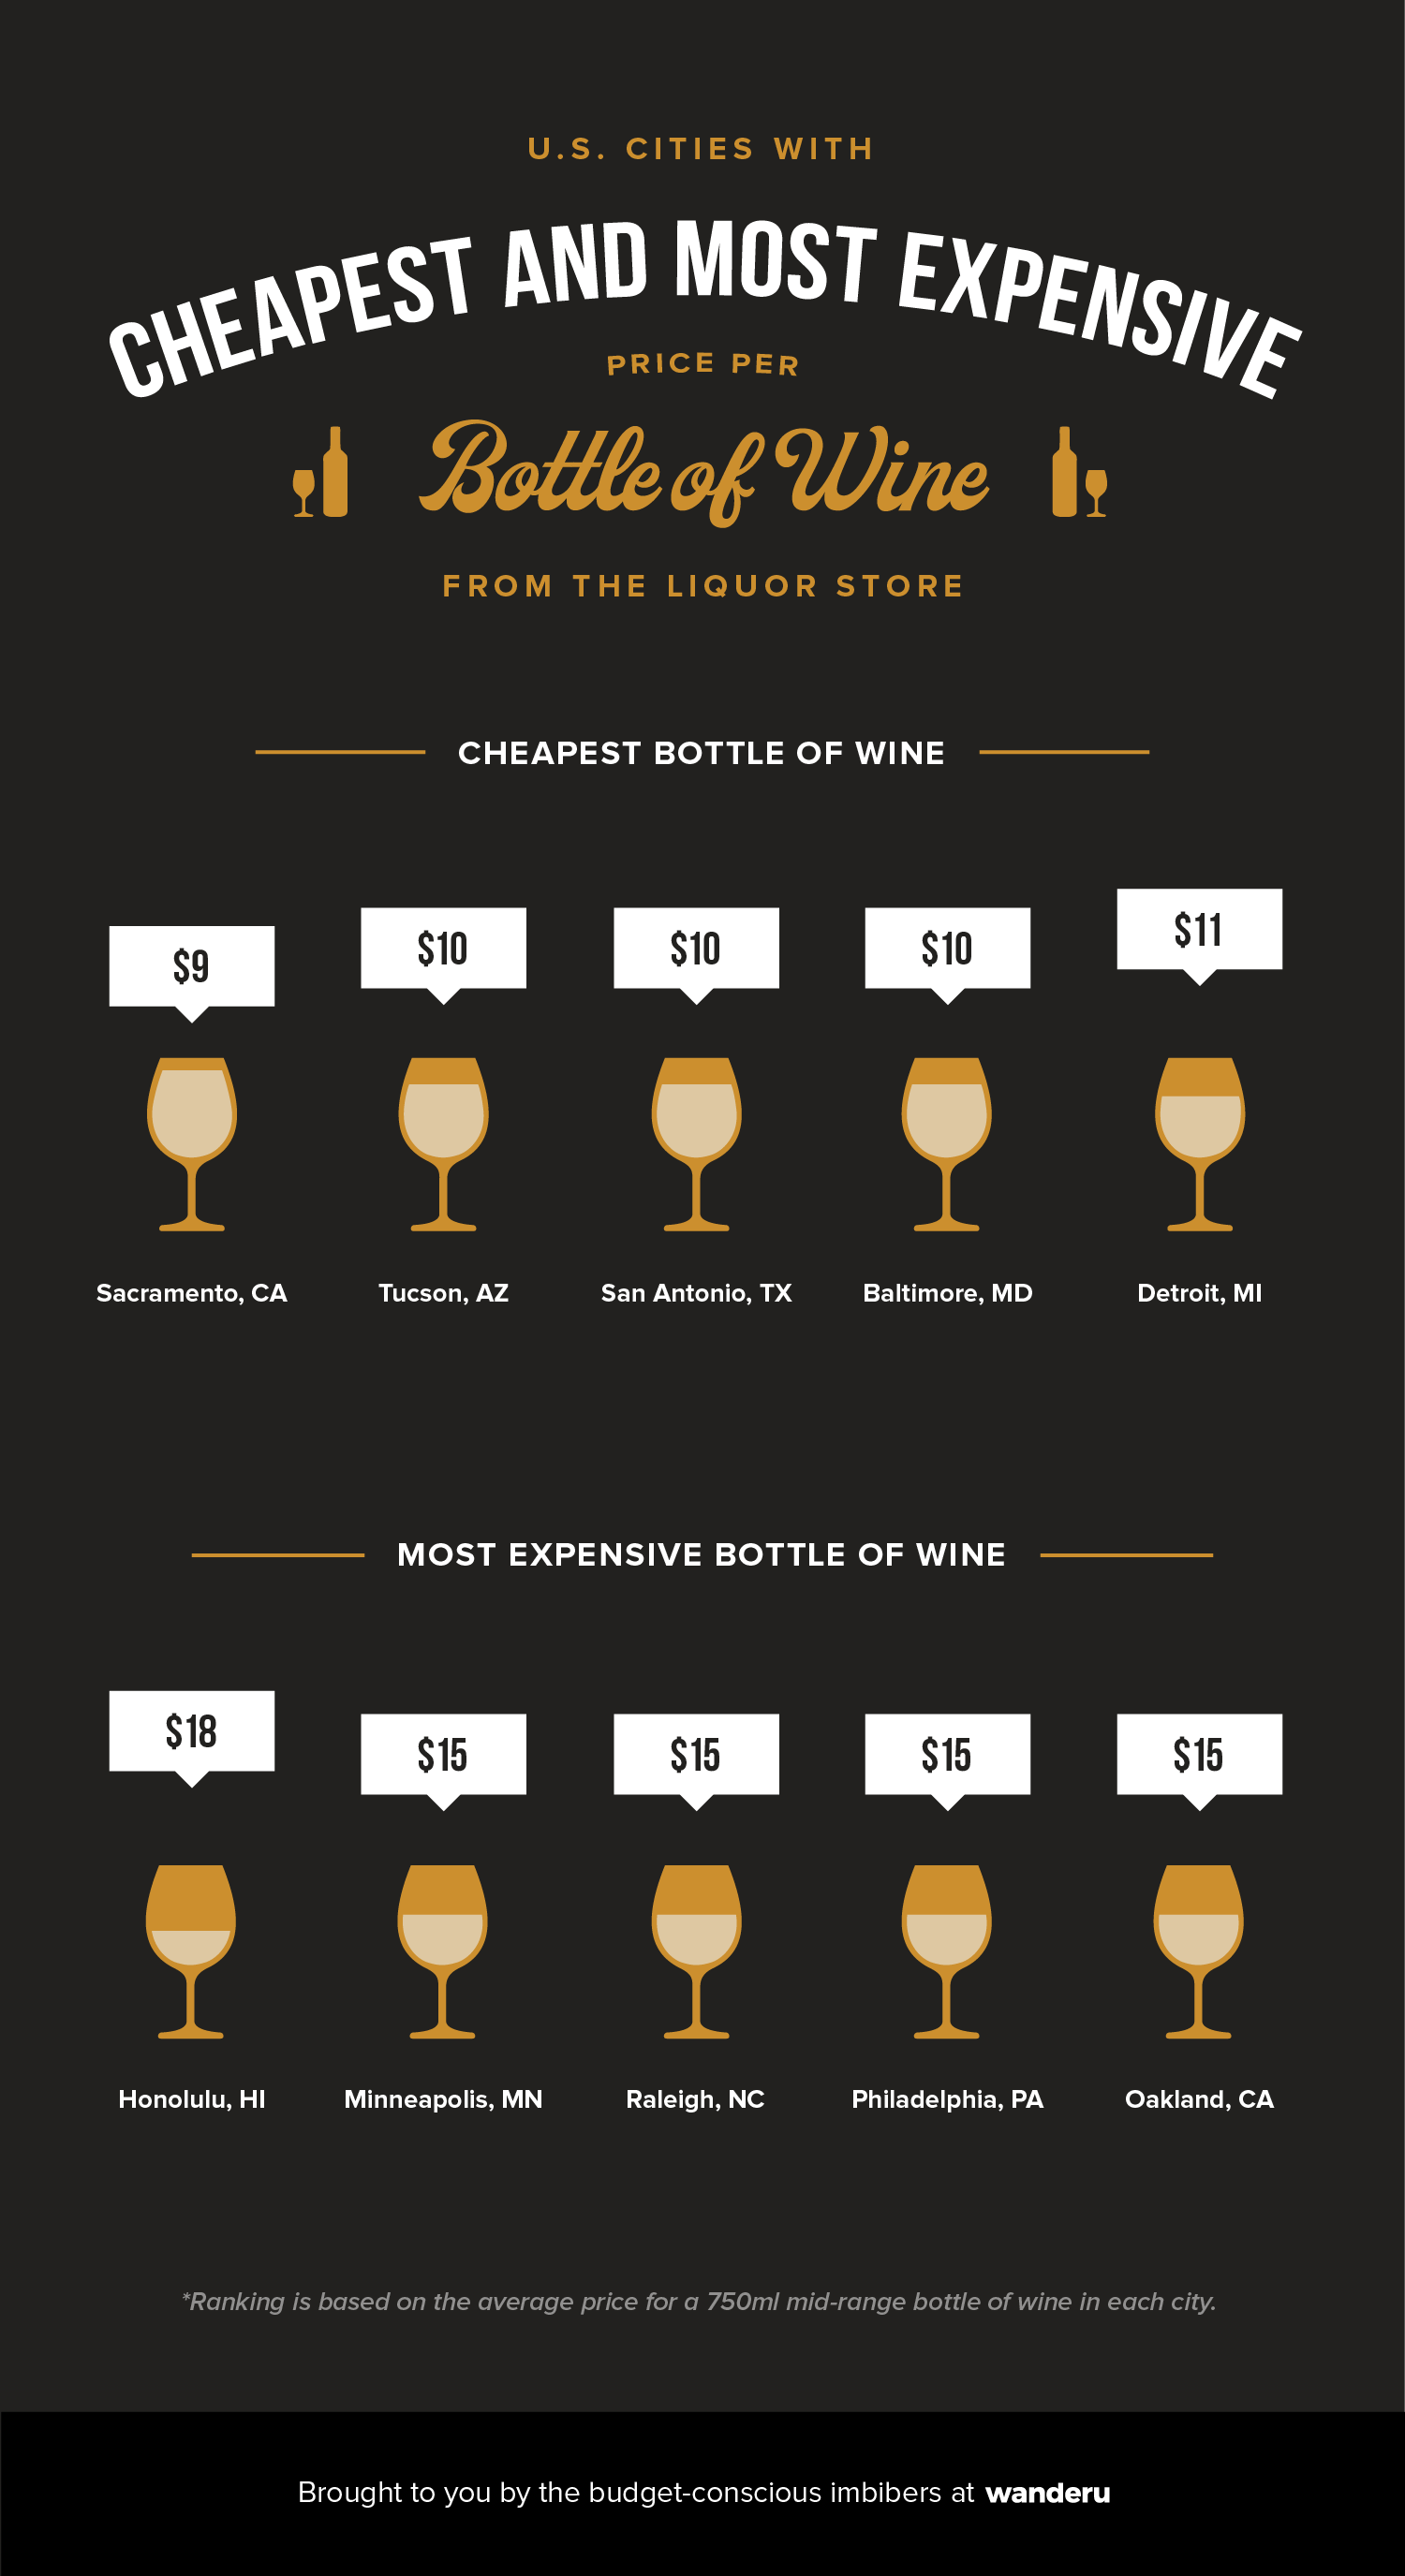 Infographic depicts the top 5 cheapest and top 5 most expensive cities in which to buy a bottle of wine.